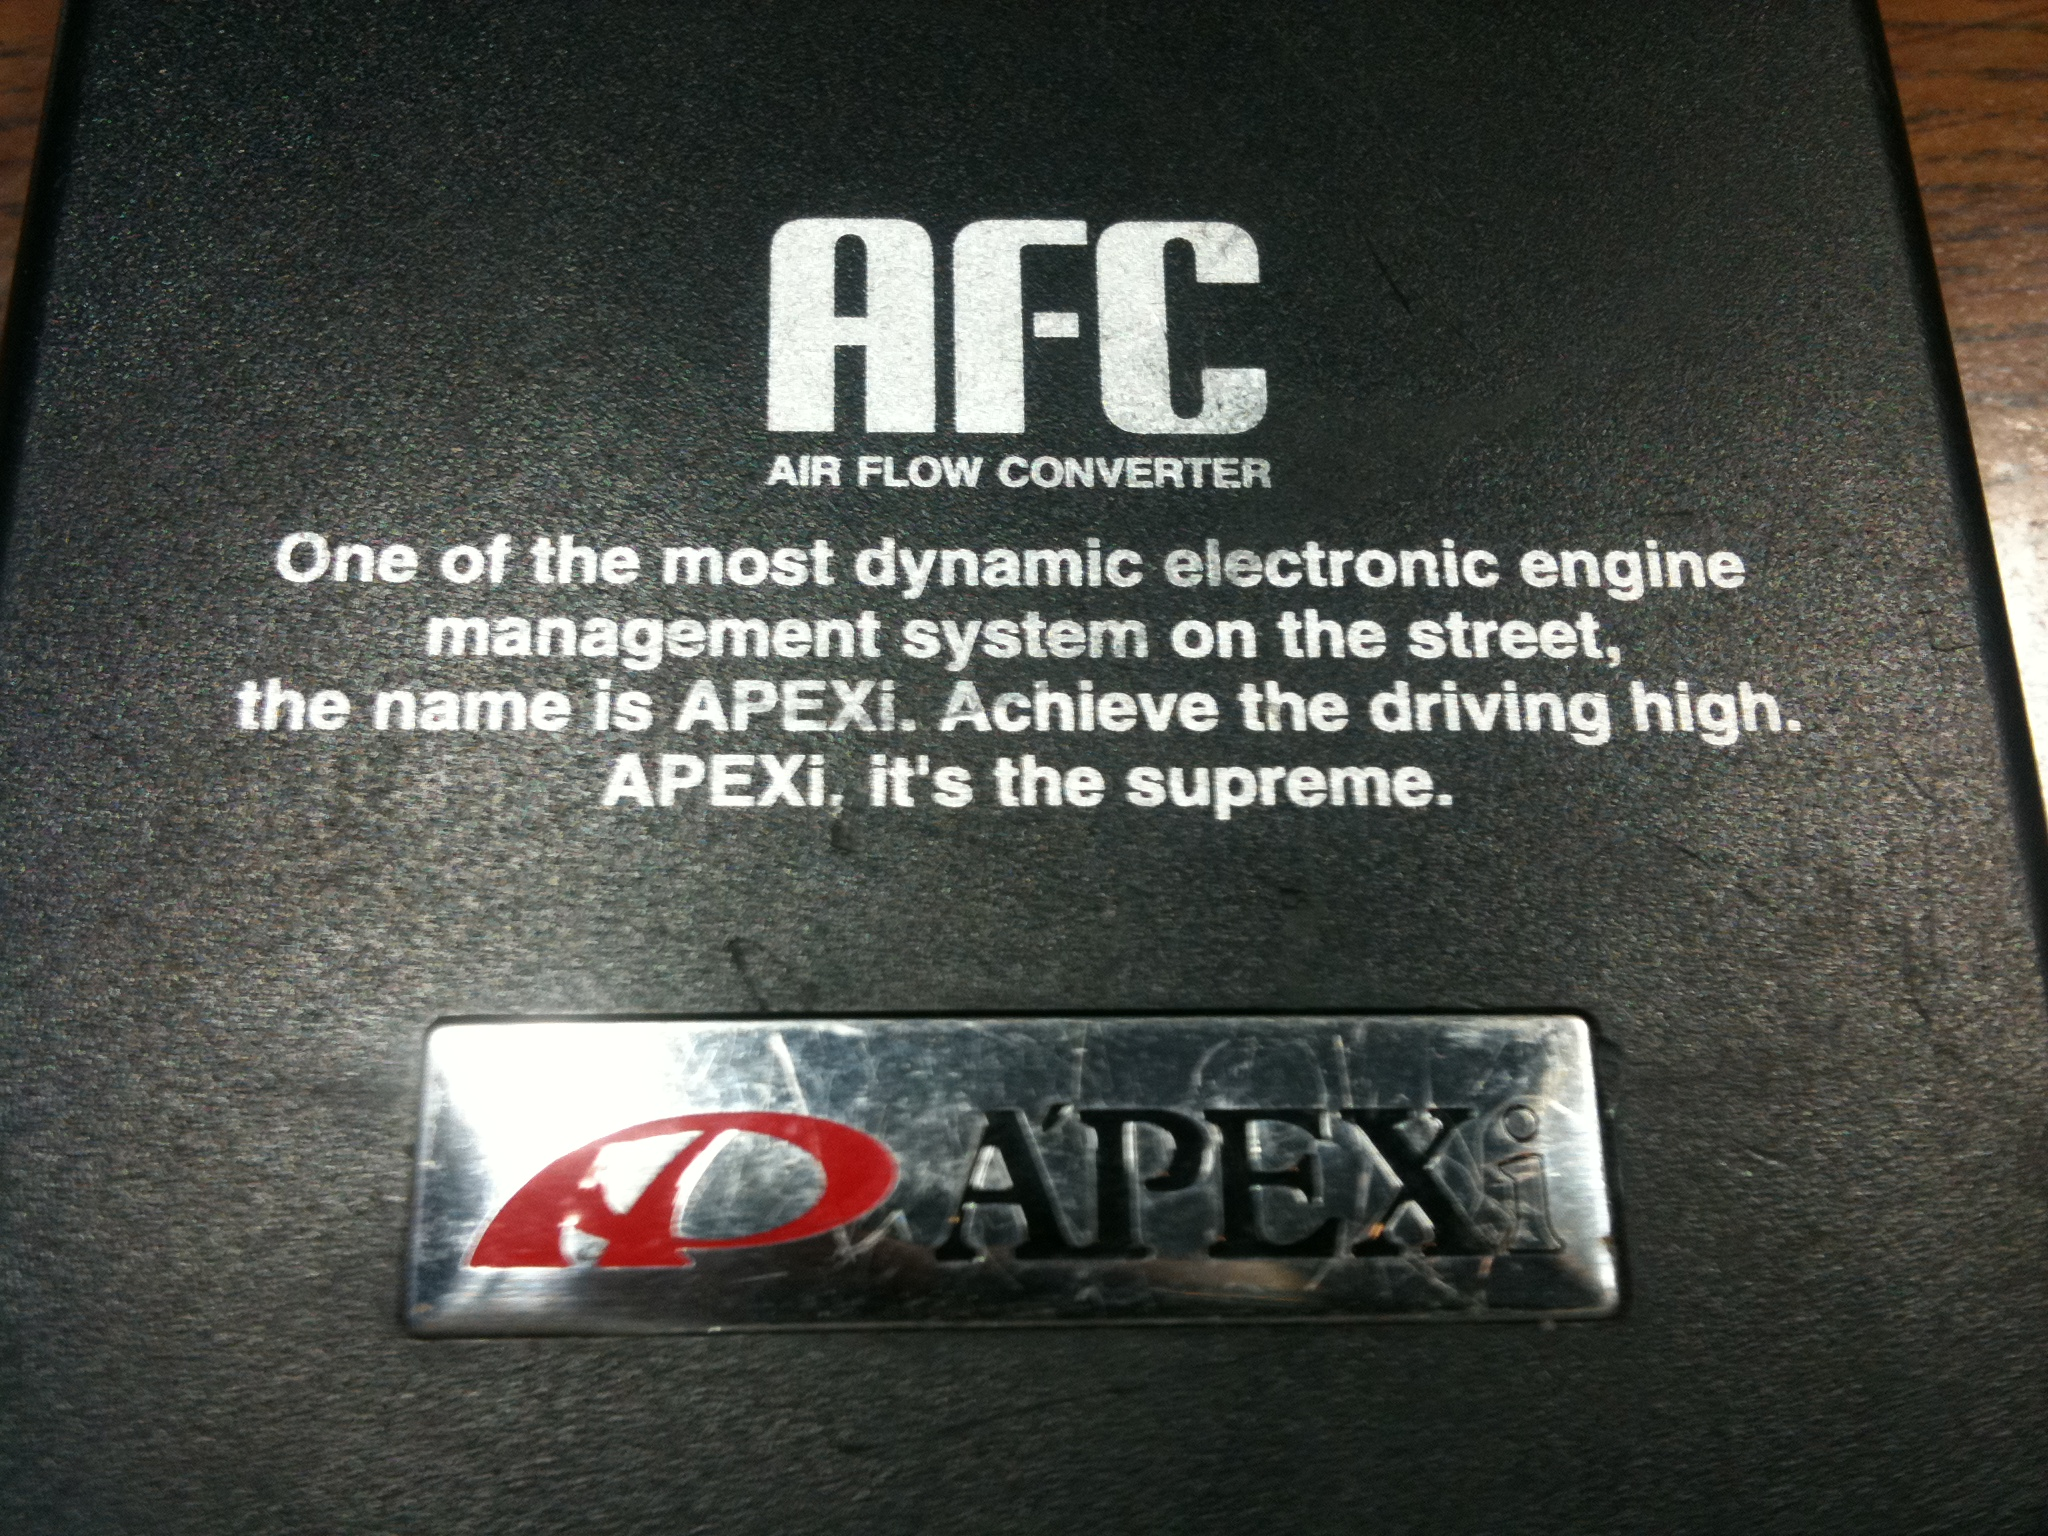 Apexi Safc Older Free Download Wiring Diagram For 1994 Acura Integra Ls Its The Supreme Db Performance Blog Product At